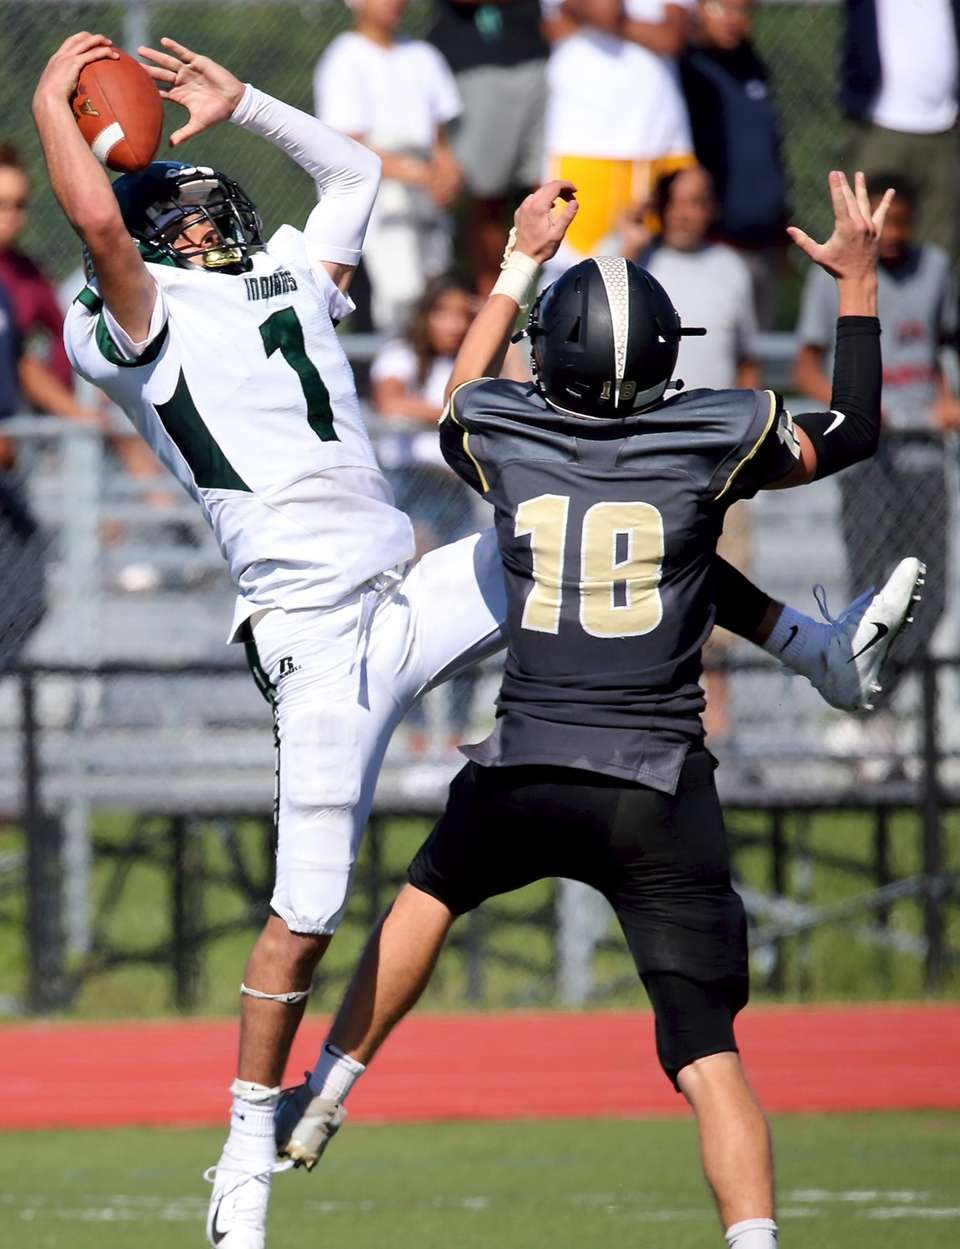 Brentwood Kenny Lazo grabs the pass over Commack